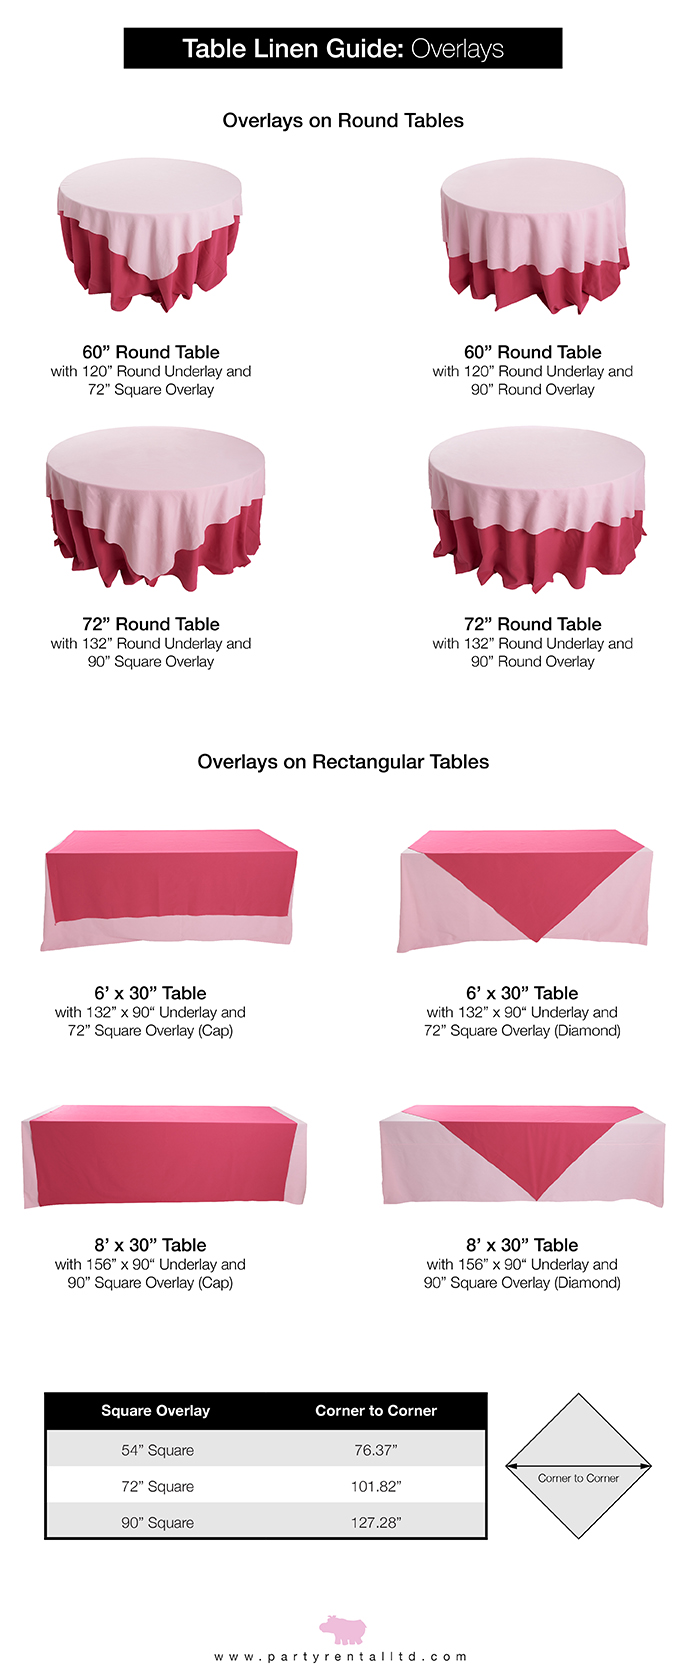 Tremendous Lets Talk Linens The Ultimate Guide To Table Linen Sizes Home Interior And Landscaping Ferensignezvosmurscom